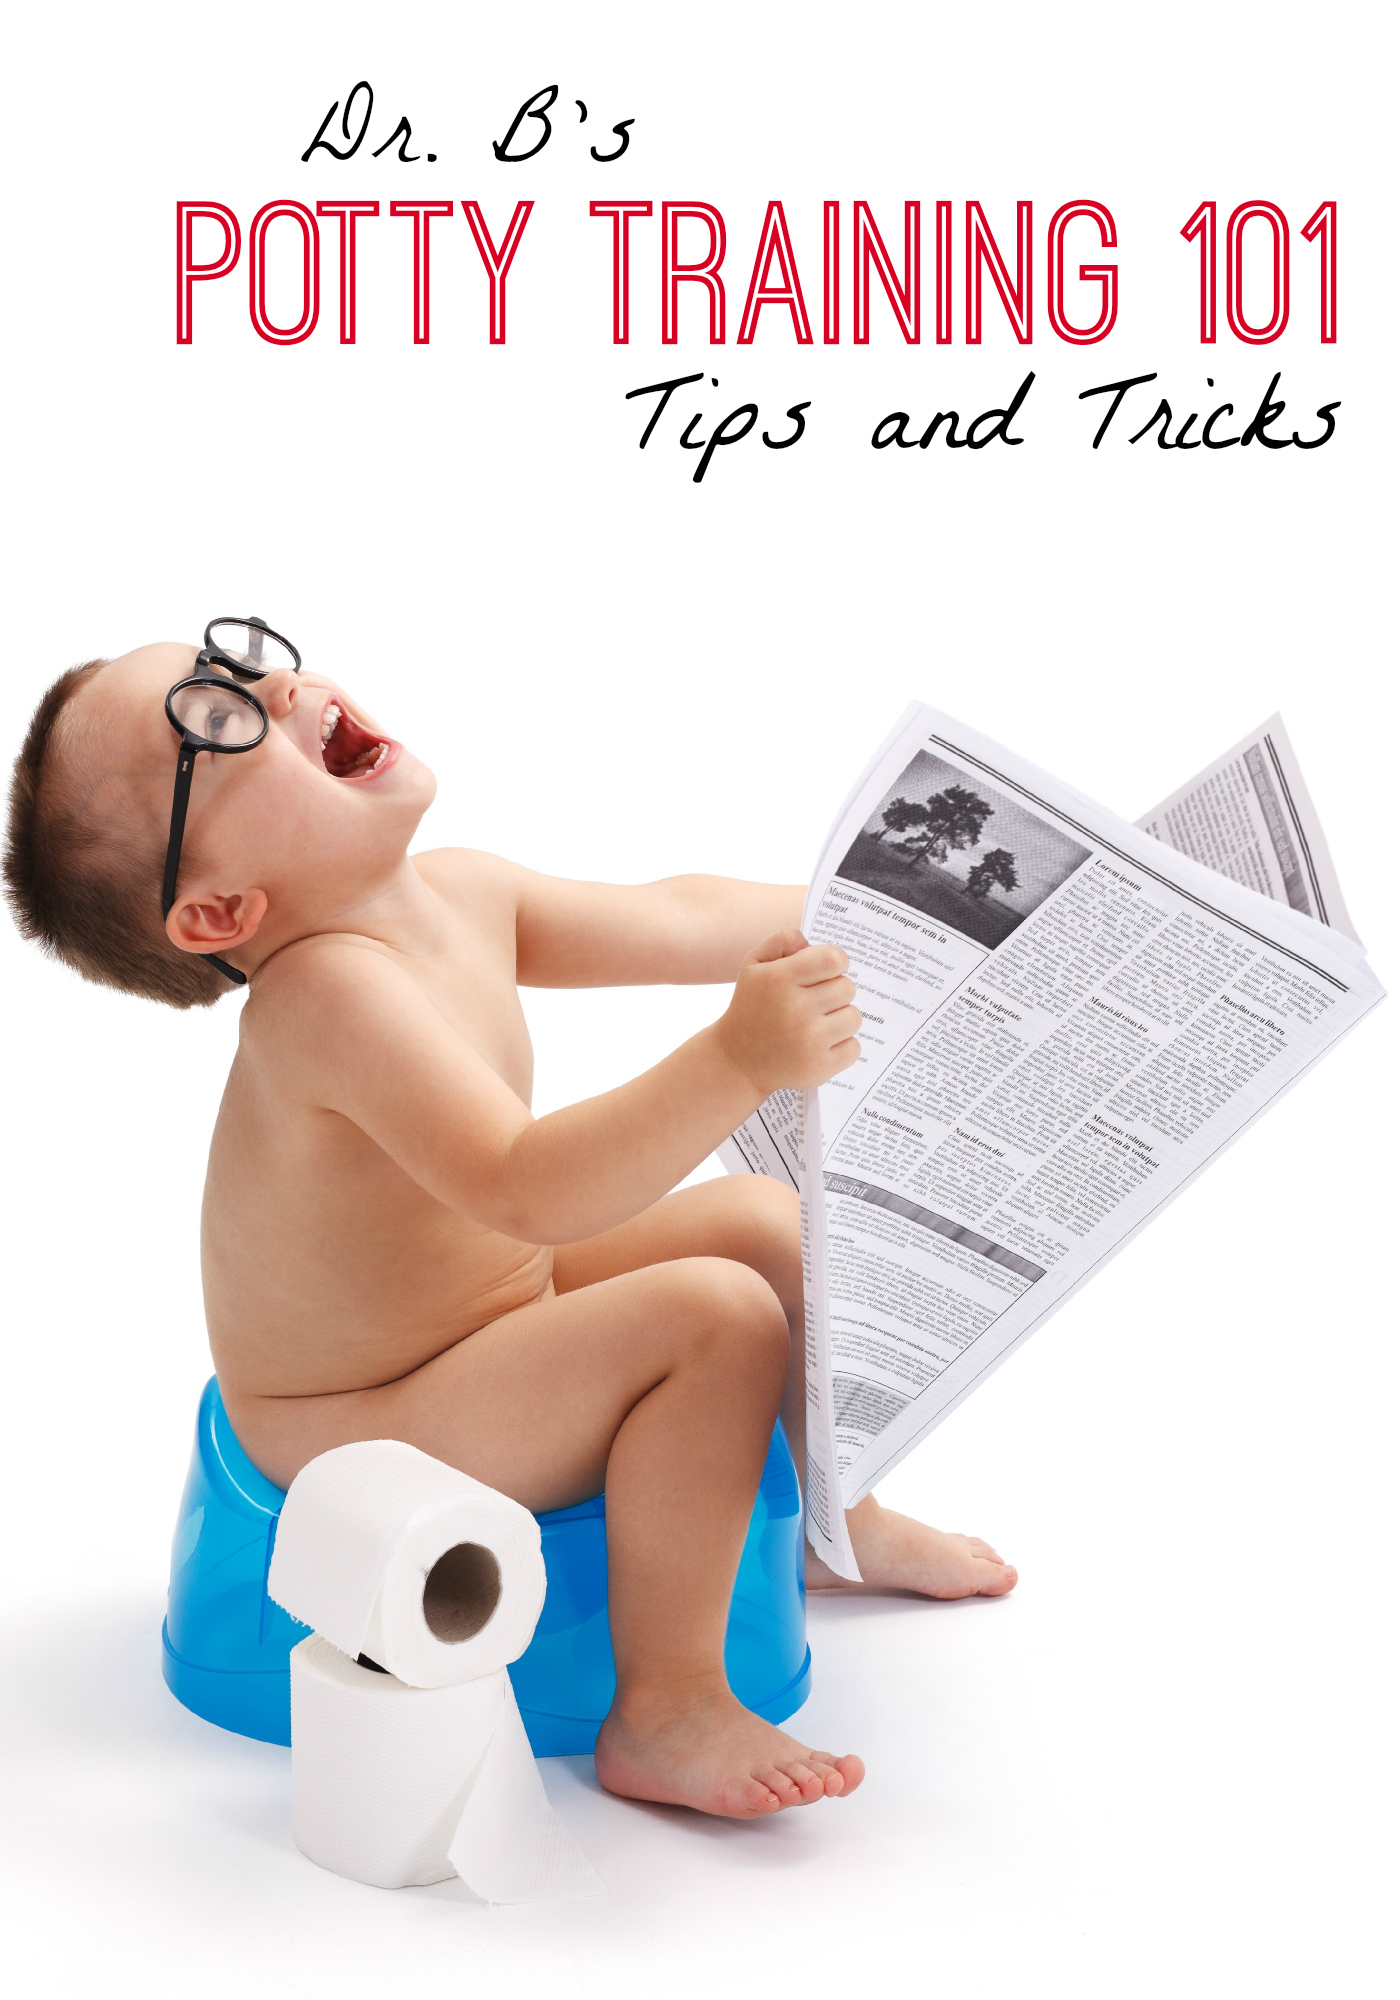 Potty Training: When to start, what you need, how to do it, and setting your child up for as few disasters as possible